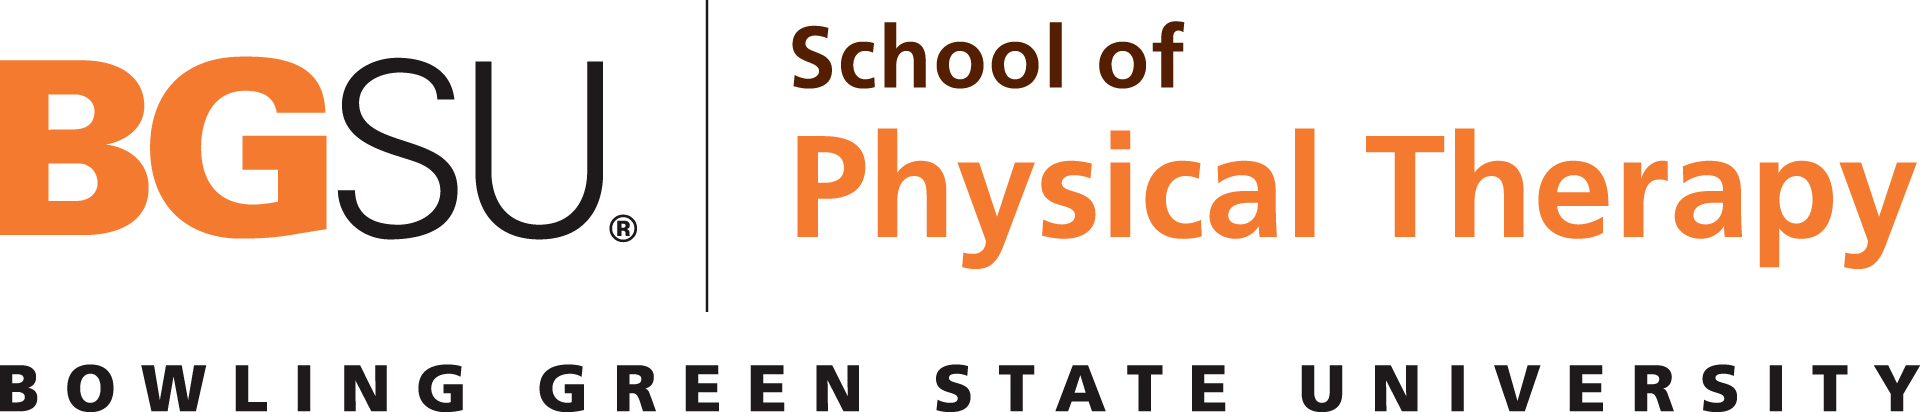 20HH4599 School of Physical Therapy Logotype